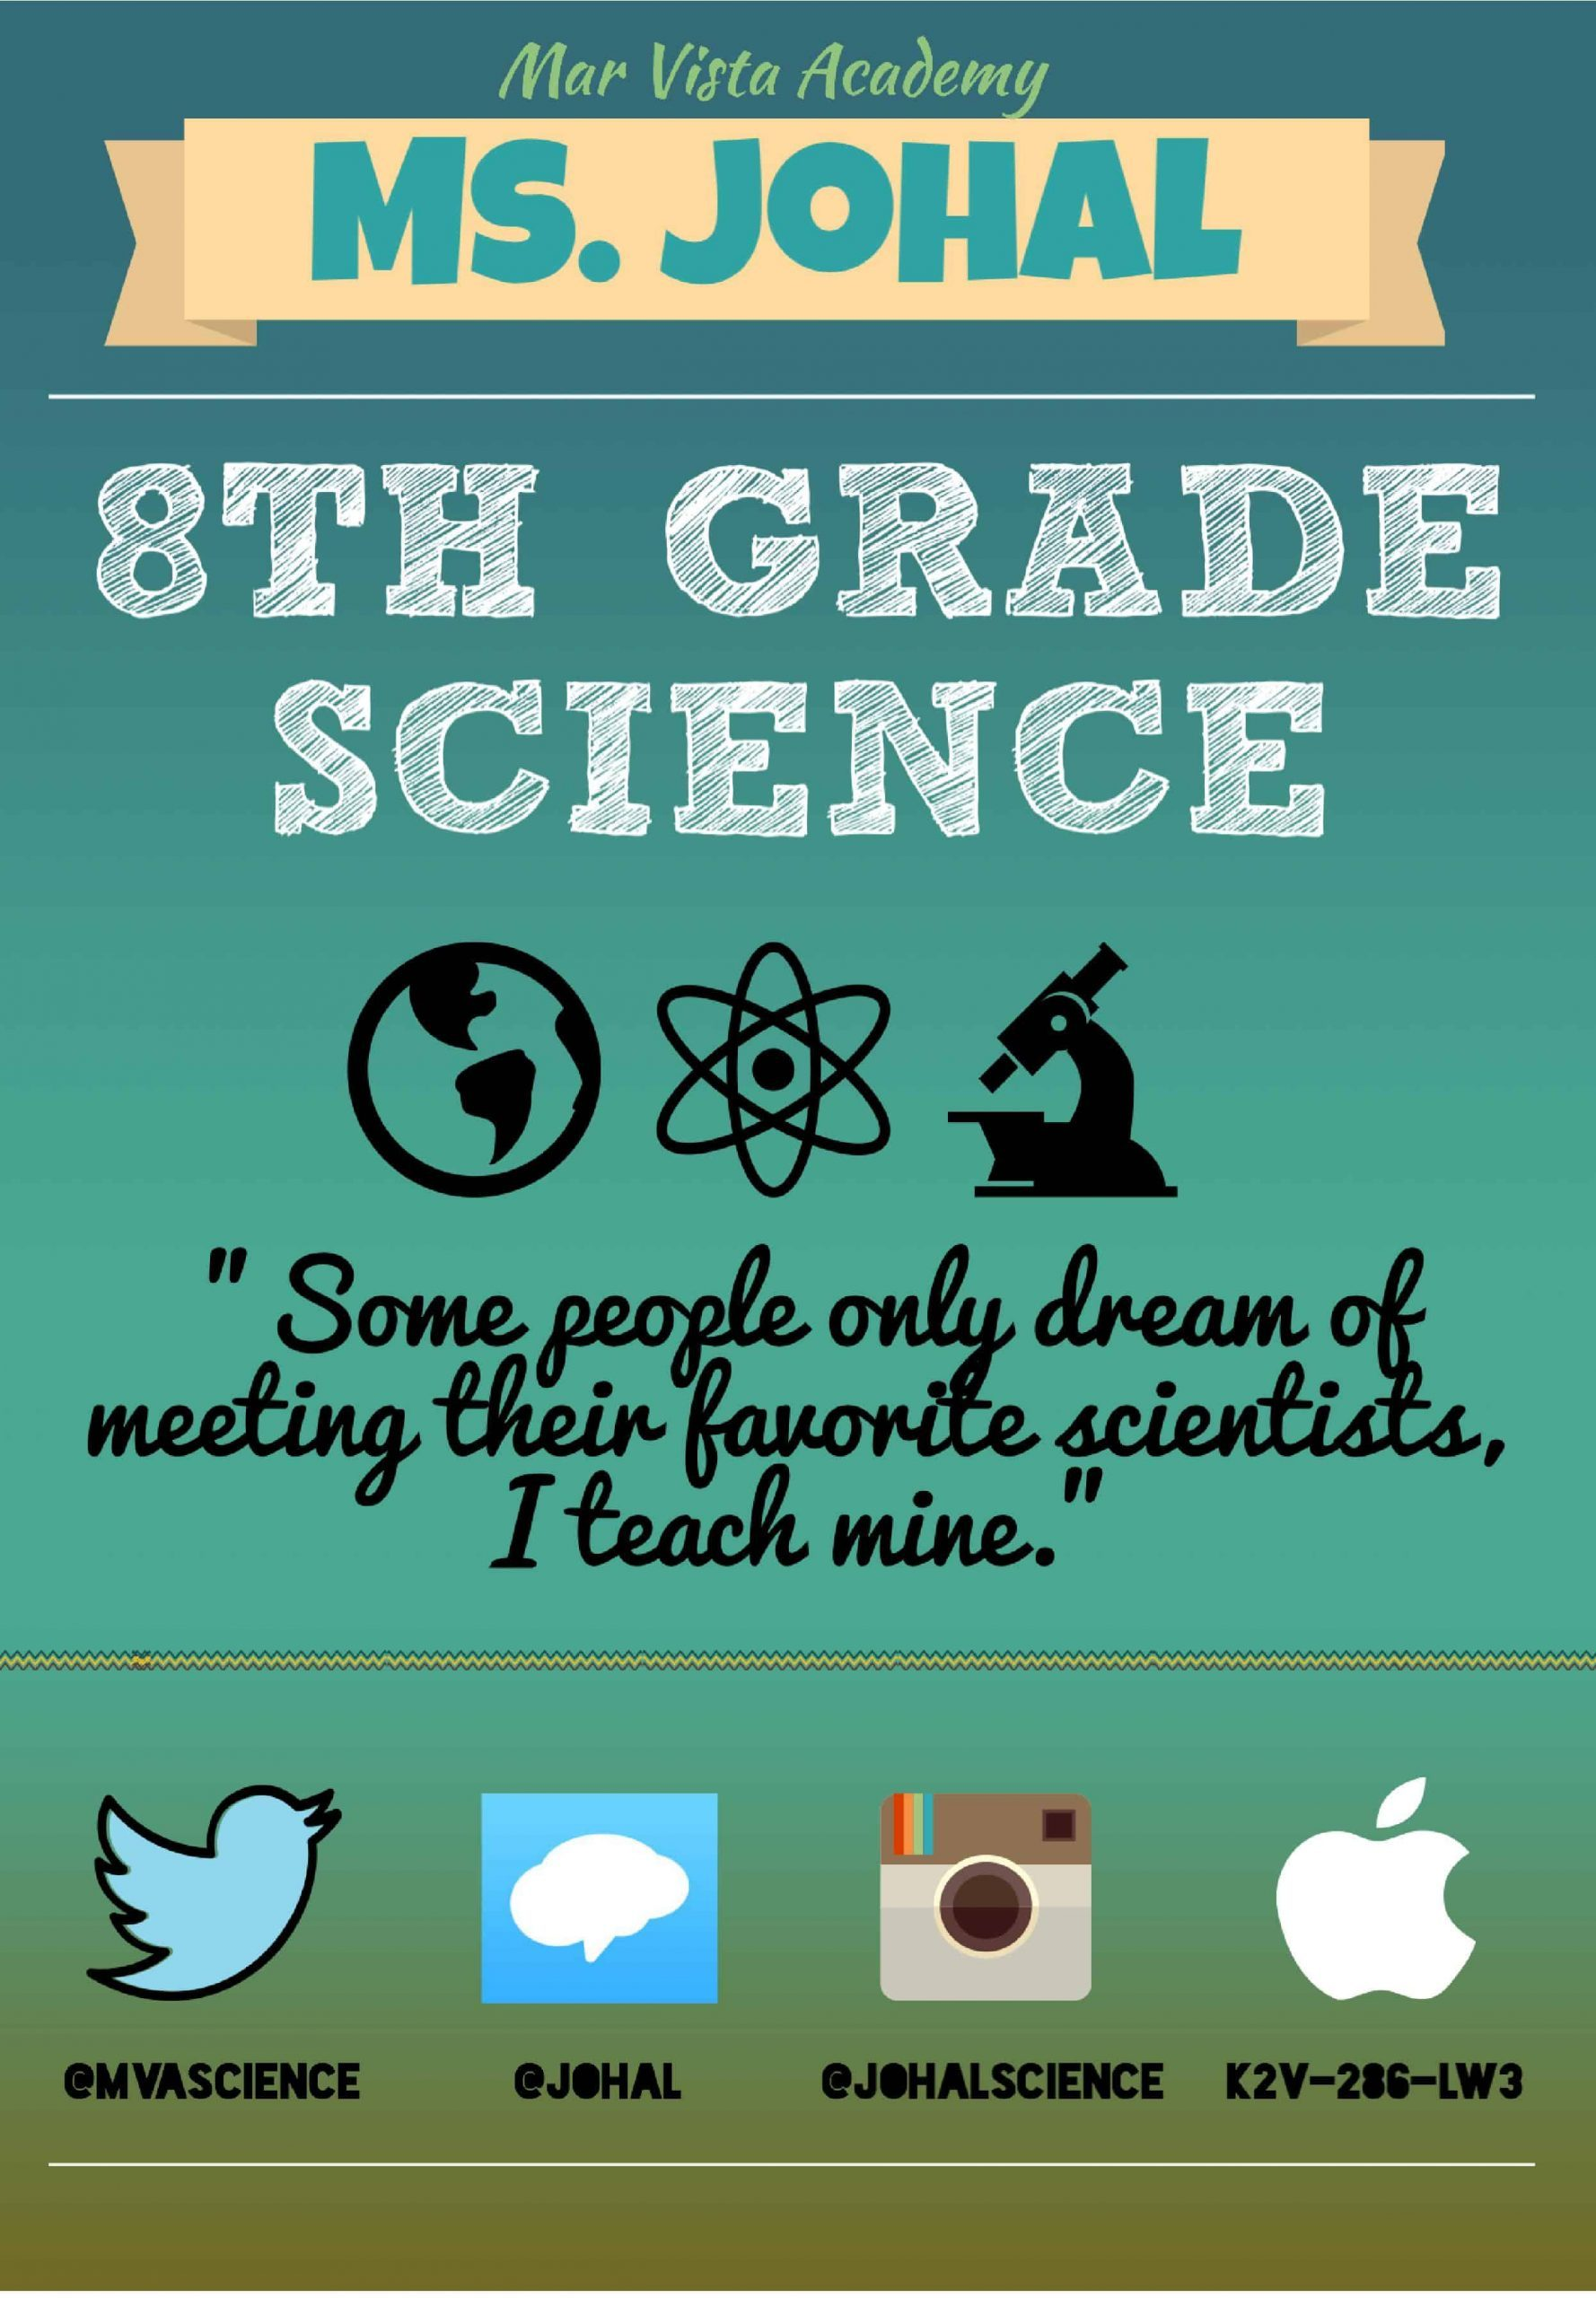 classroom-banner-page-001-5379715